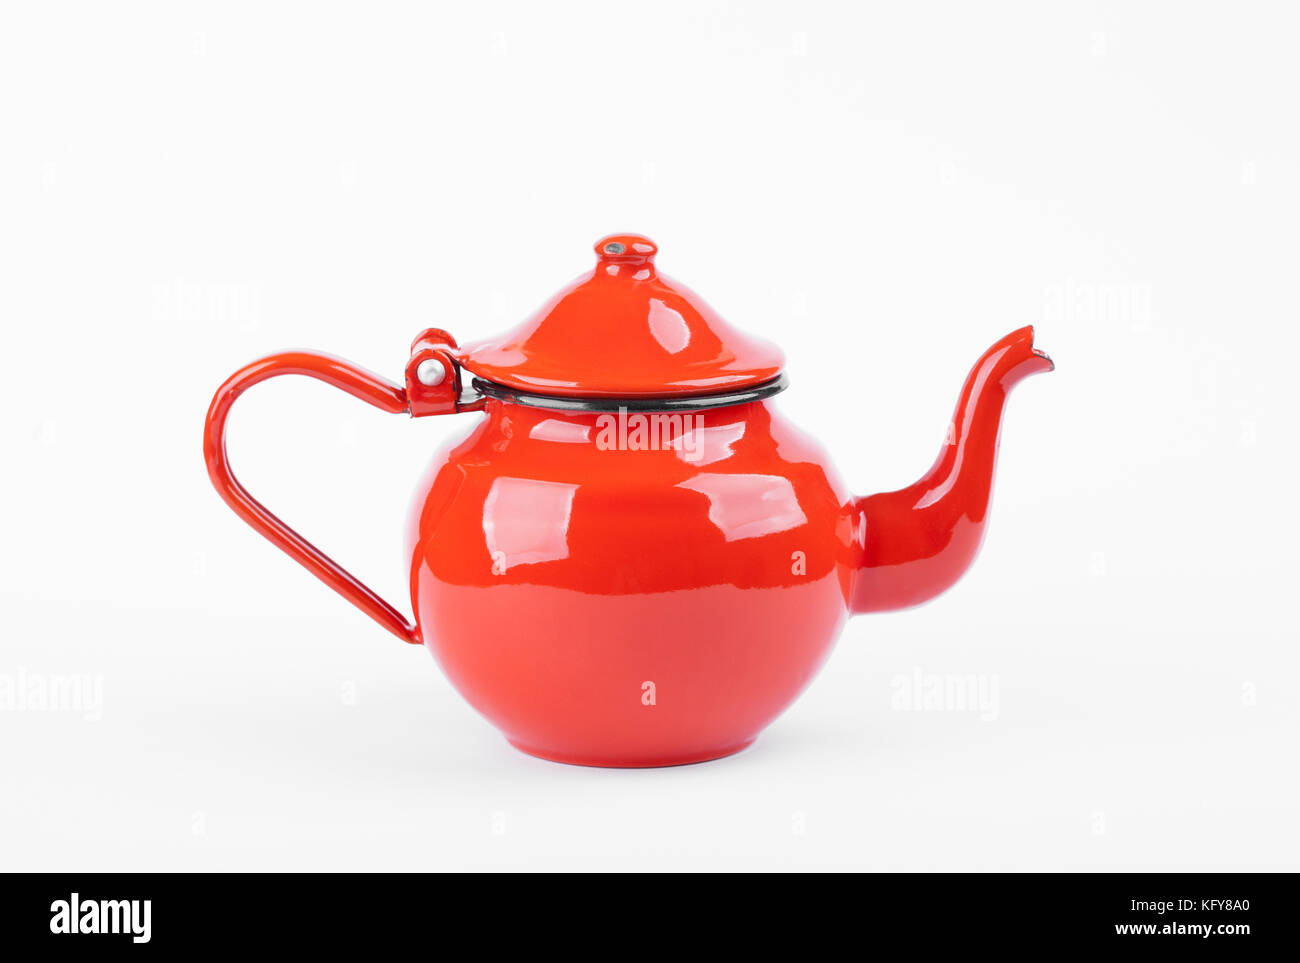 Red tea kettle isolated on white - Stock Image